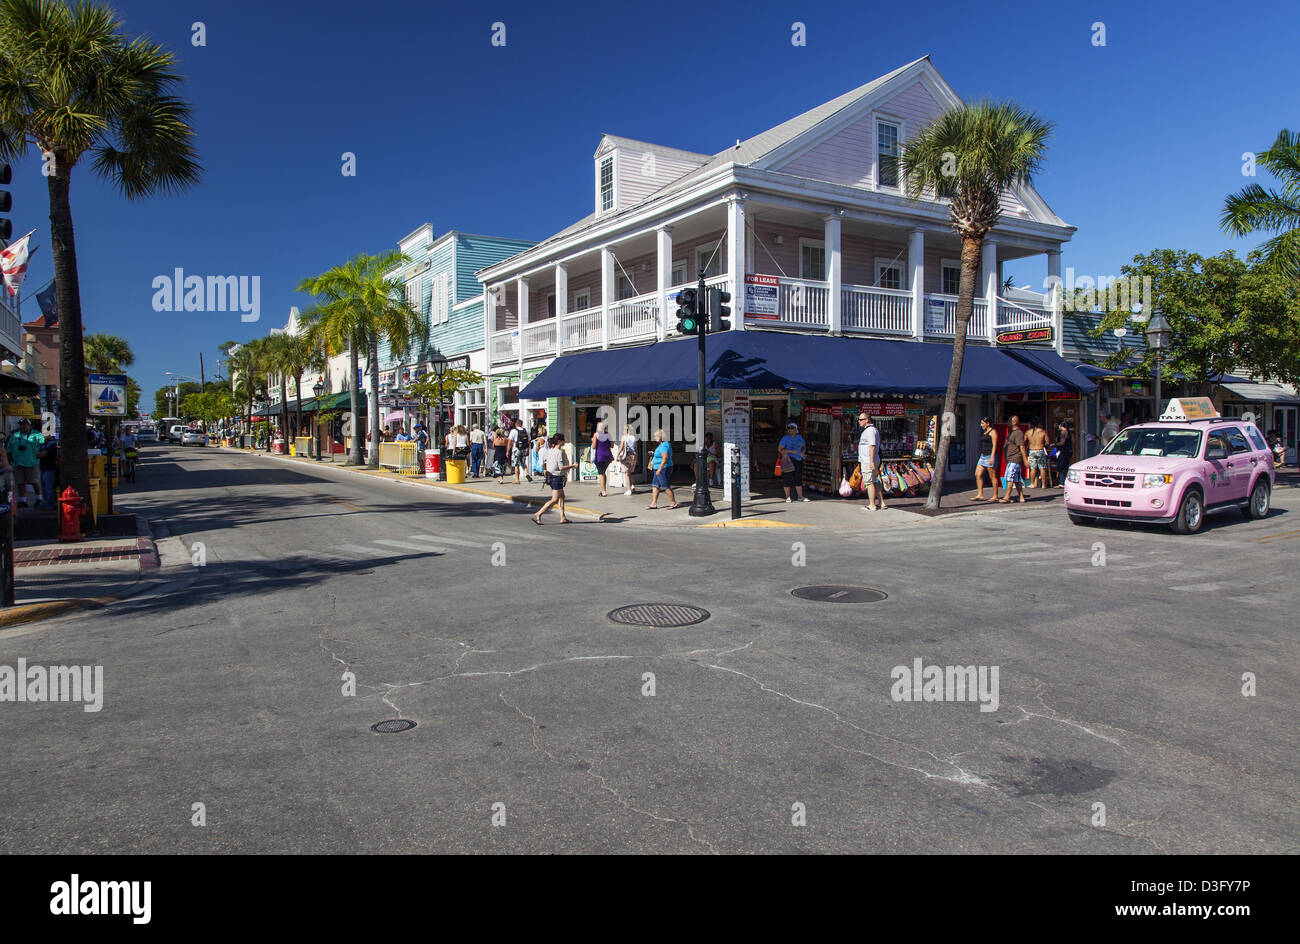 Streets of Key West, Florida, USA - Stock Image